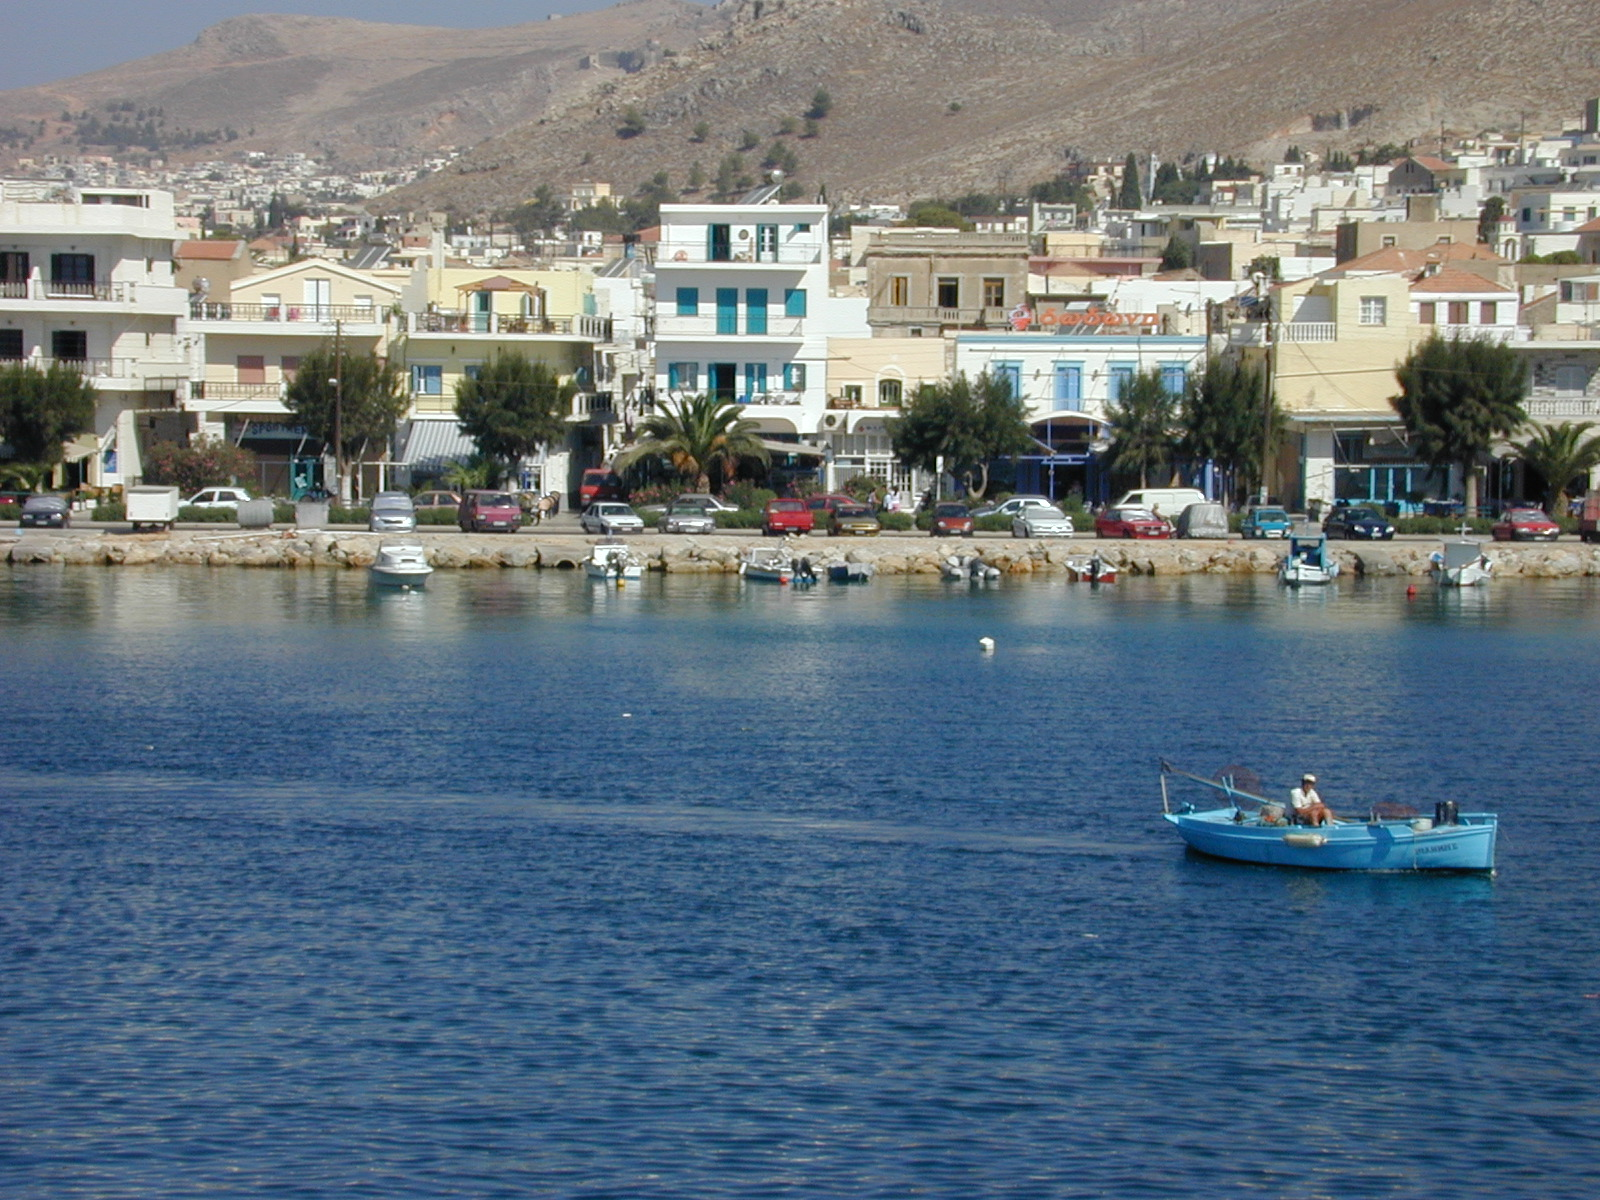 nature landscapes bay house houses greece boats cars mountains water mediterenean fisherman fisherboat